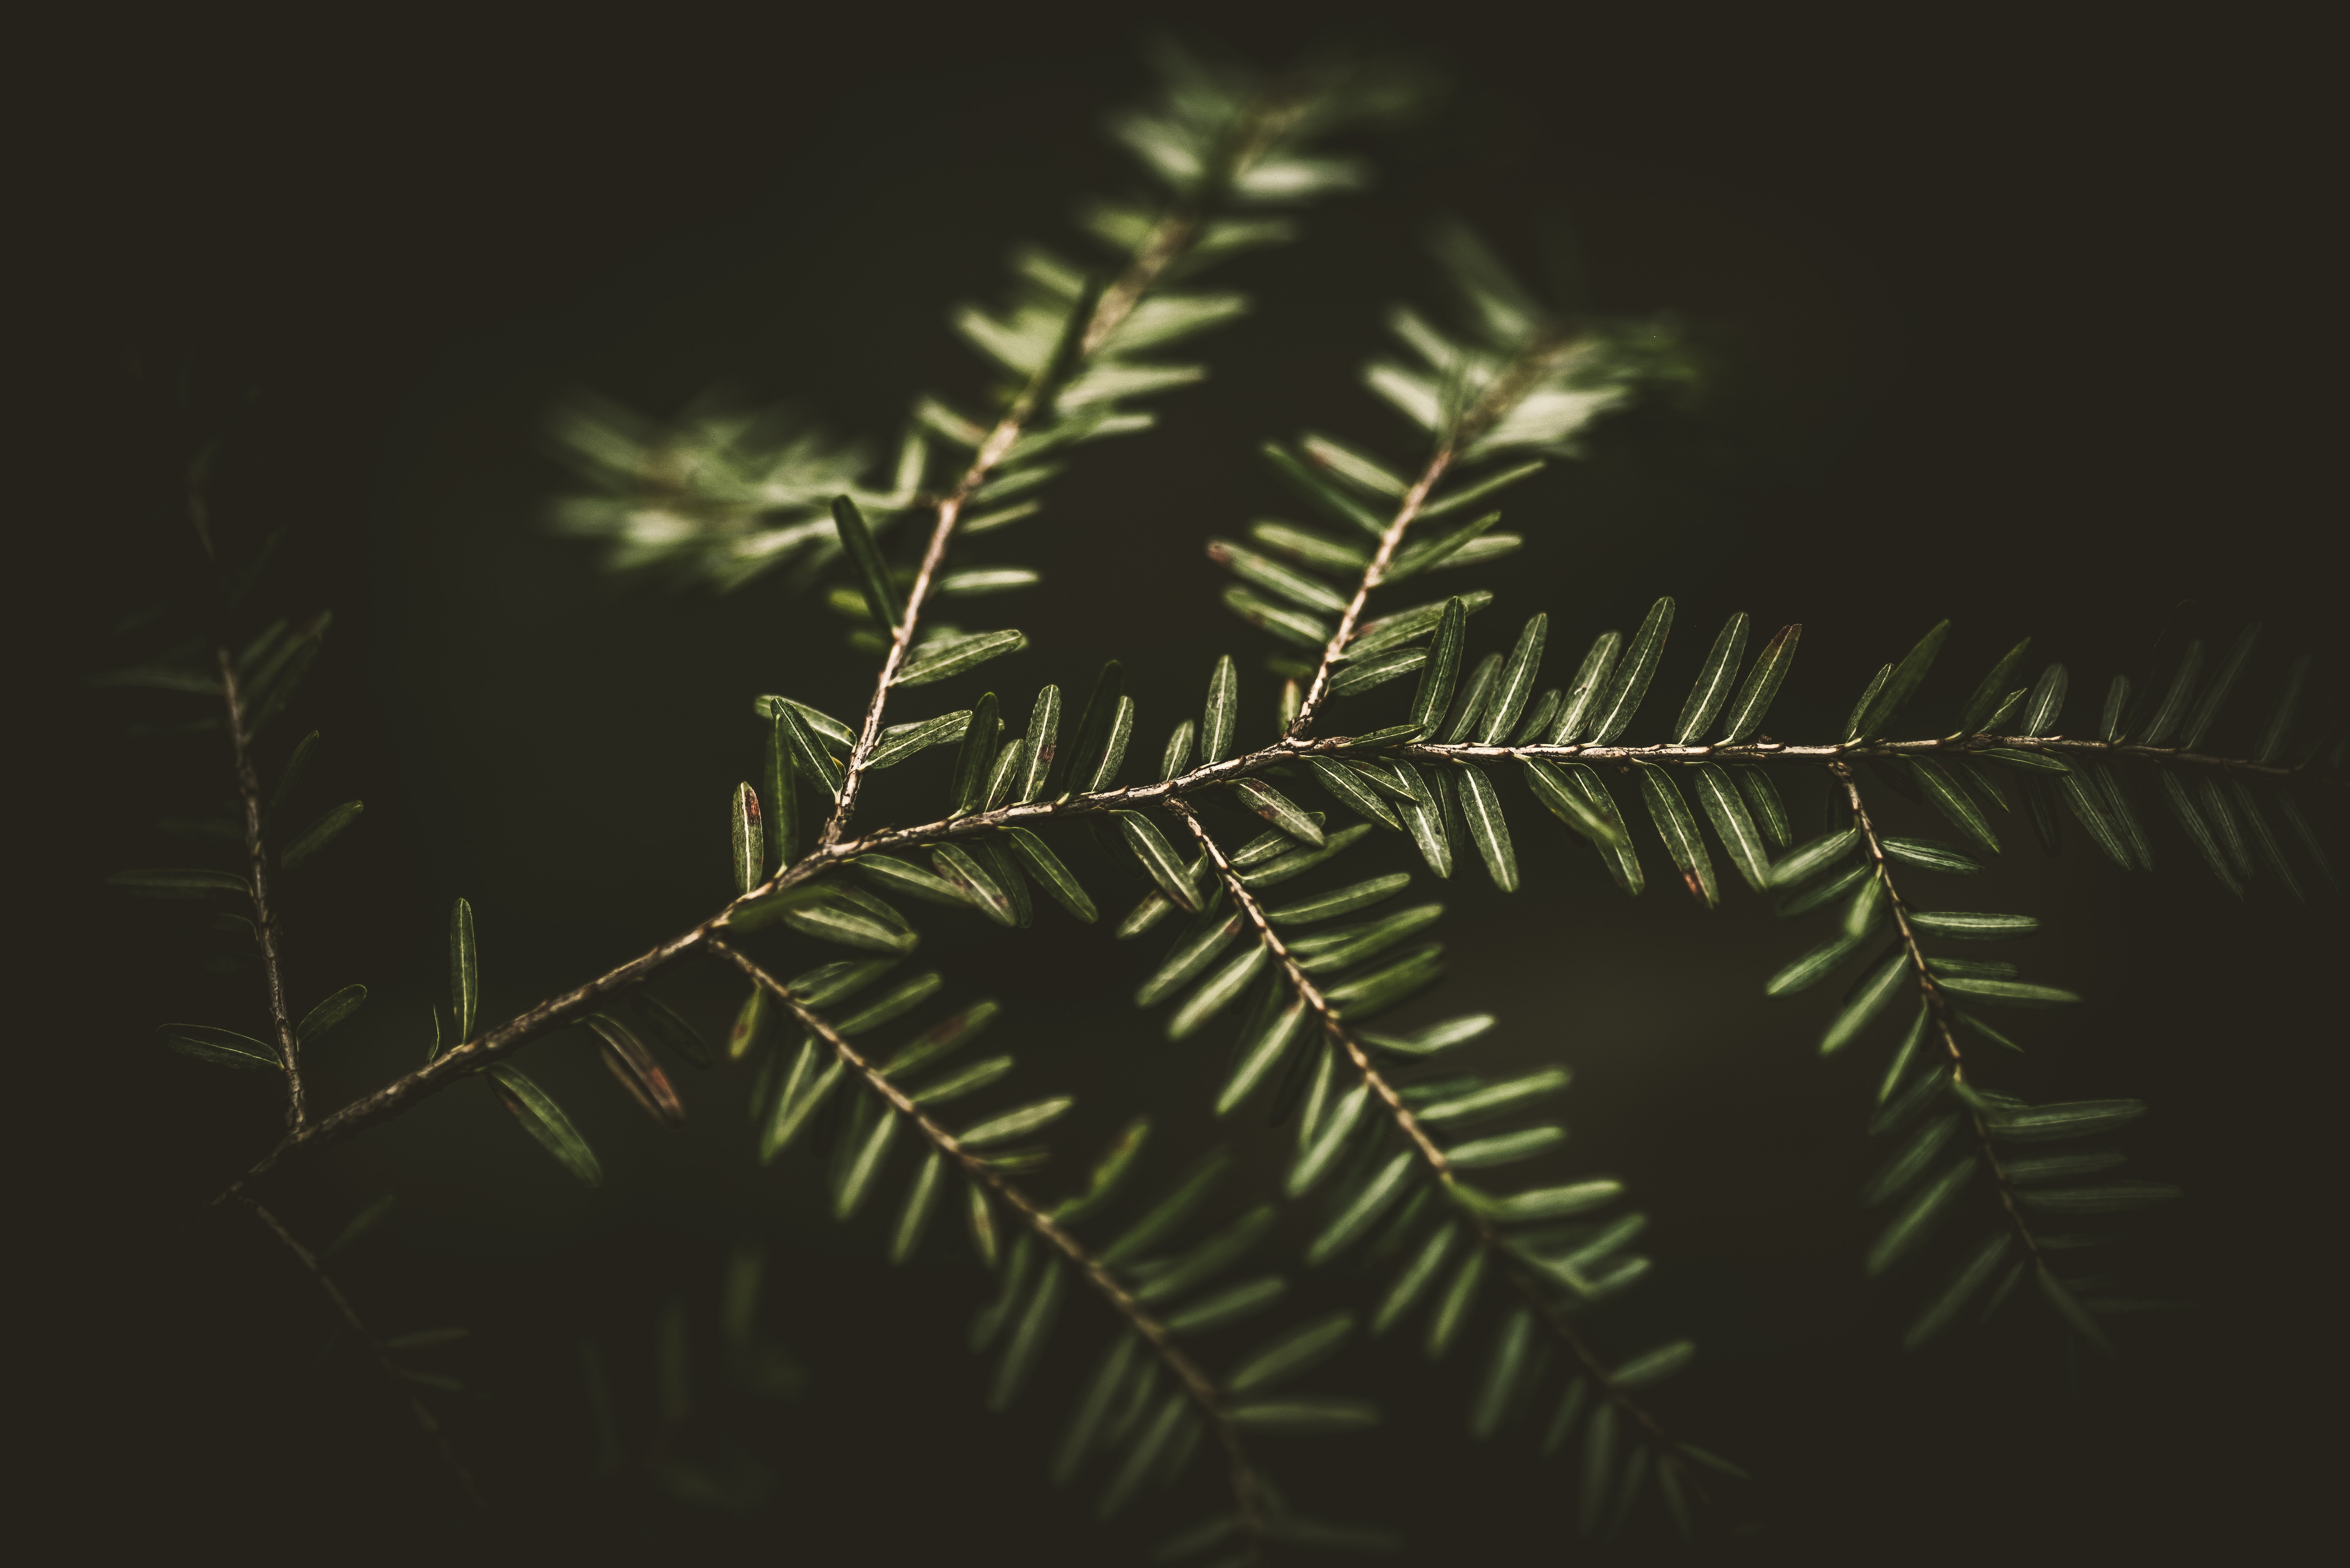 green linear-leafed plant